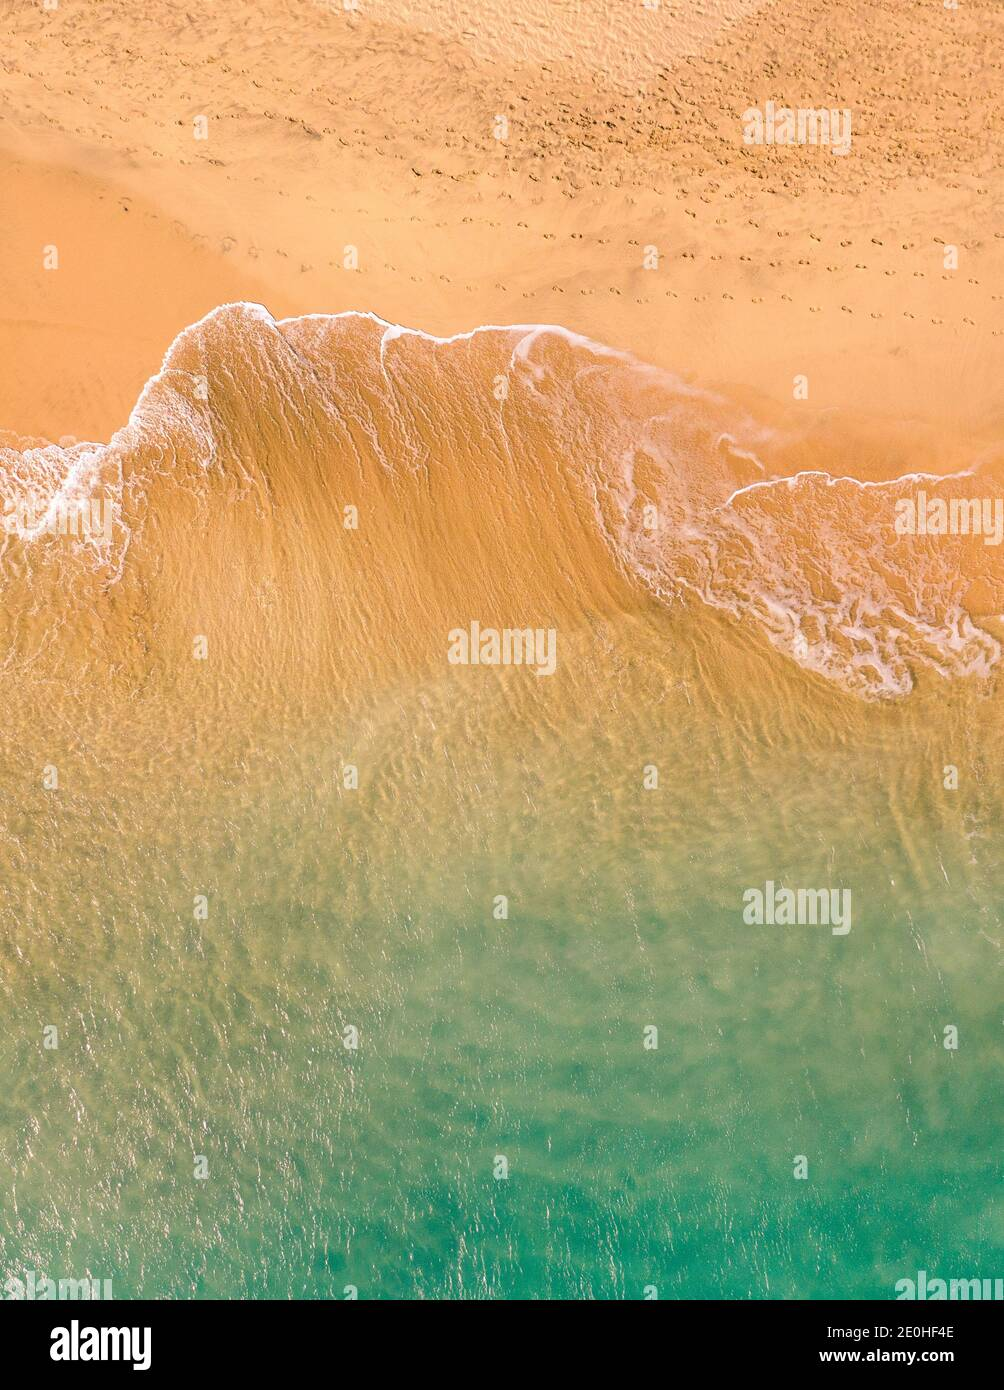 Aerial top down view of beautiful Atlantic ocean coast with crystal clear turquoise water and sandy beach, waves rolling into the shore Stock Photo